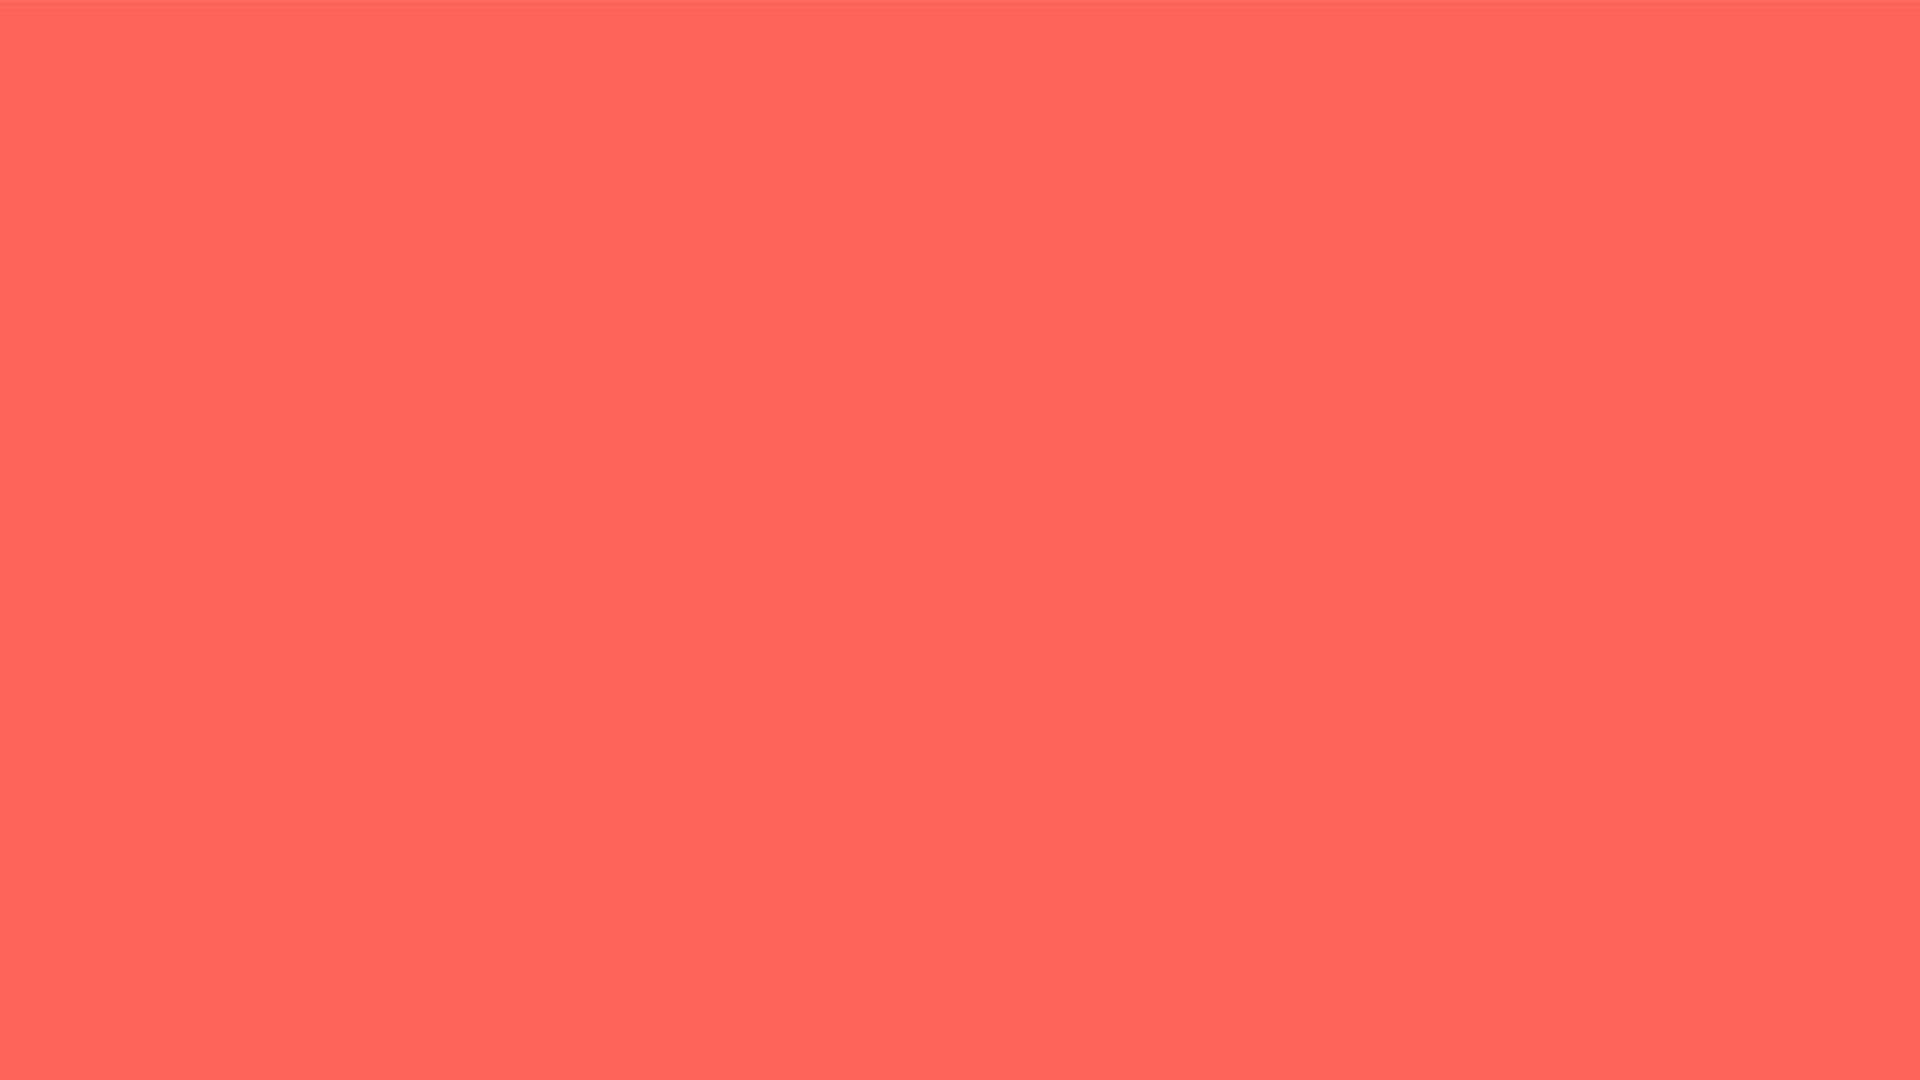 Living Coral Is Pantone's 'Life-Affirming' 2019 Colour of the Year